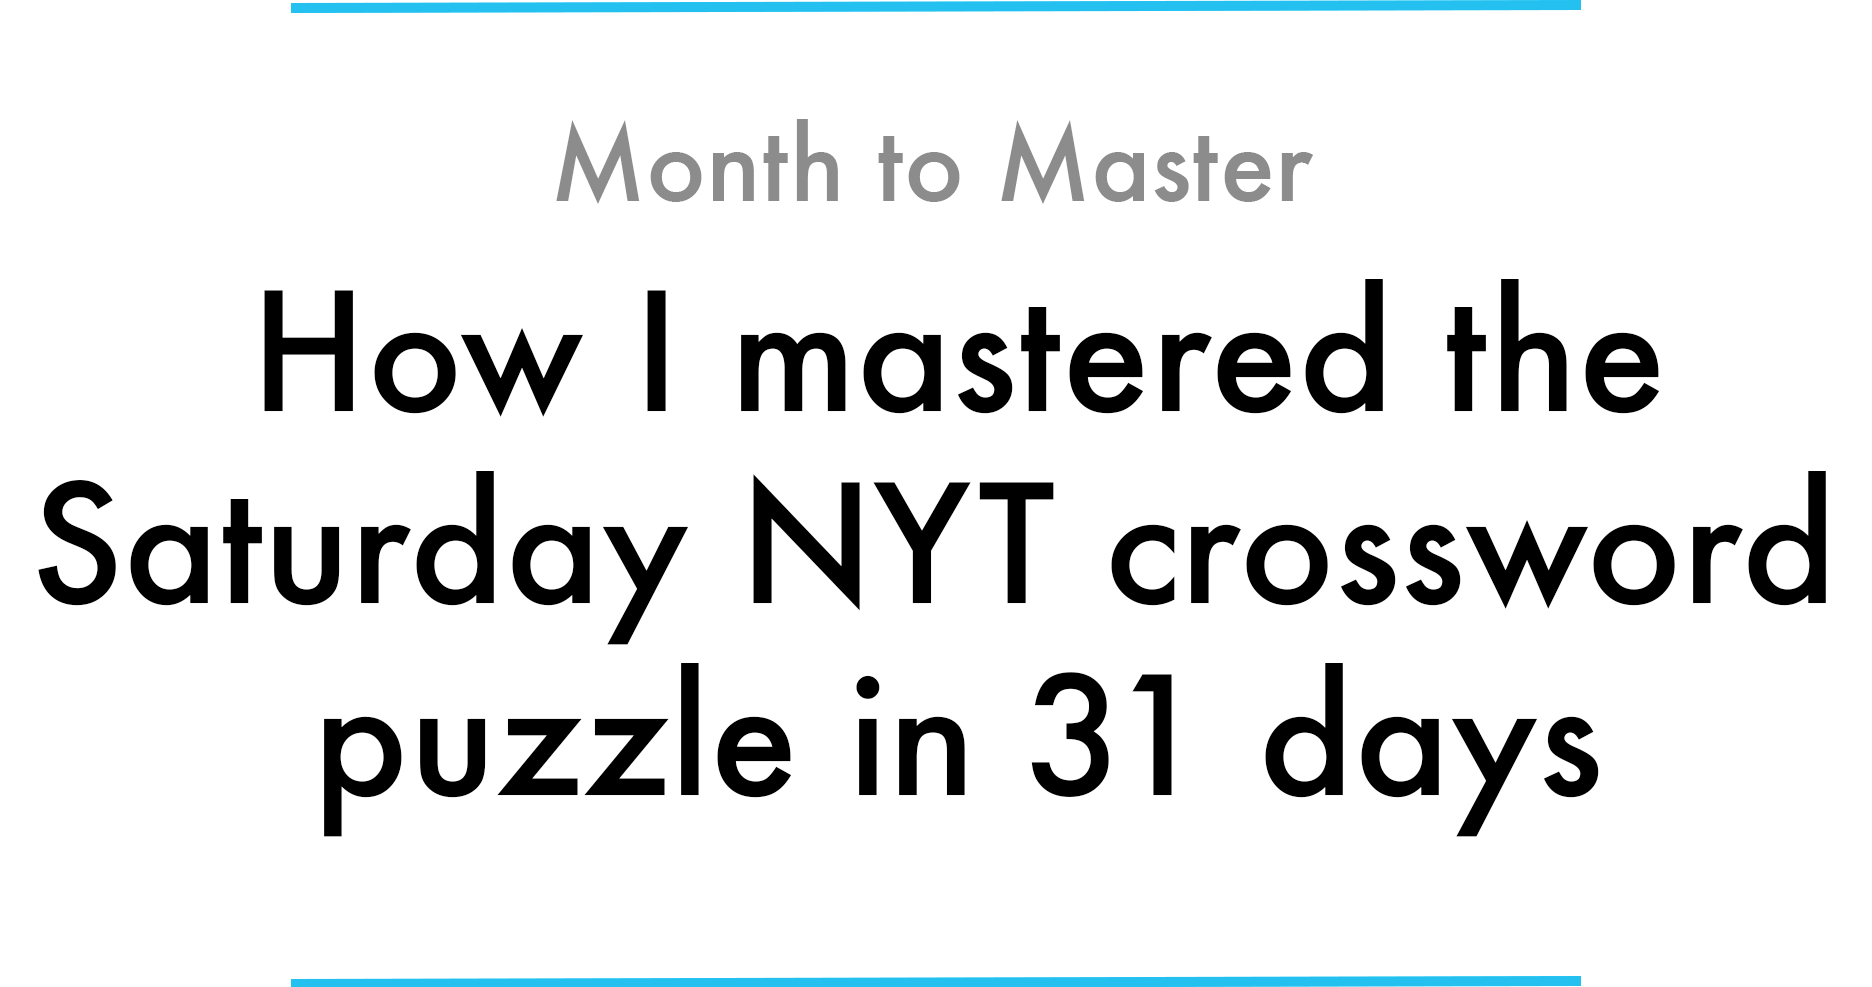 graphic regarding La Times Crossword Printable referred to as How I mastered the Saay NYT crossword puzzle inside of 31 times